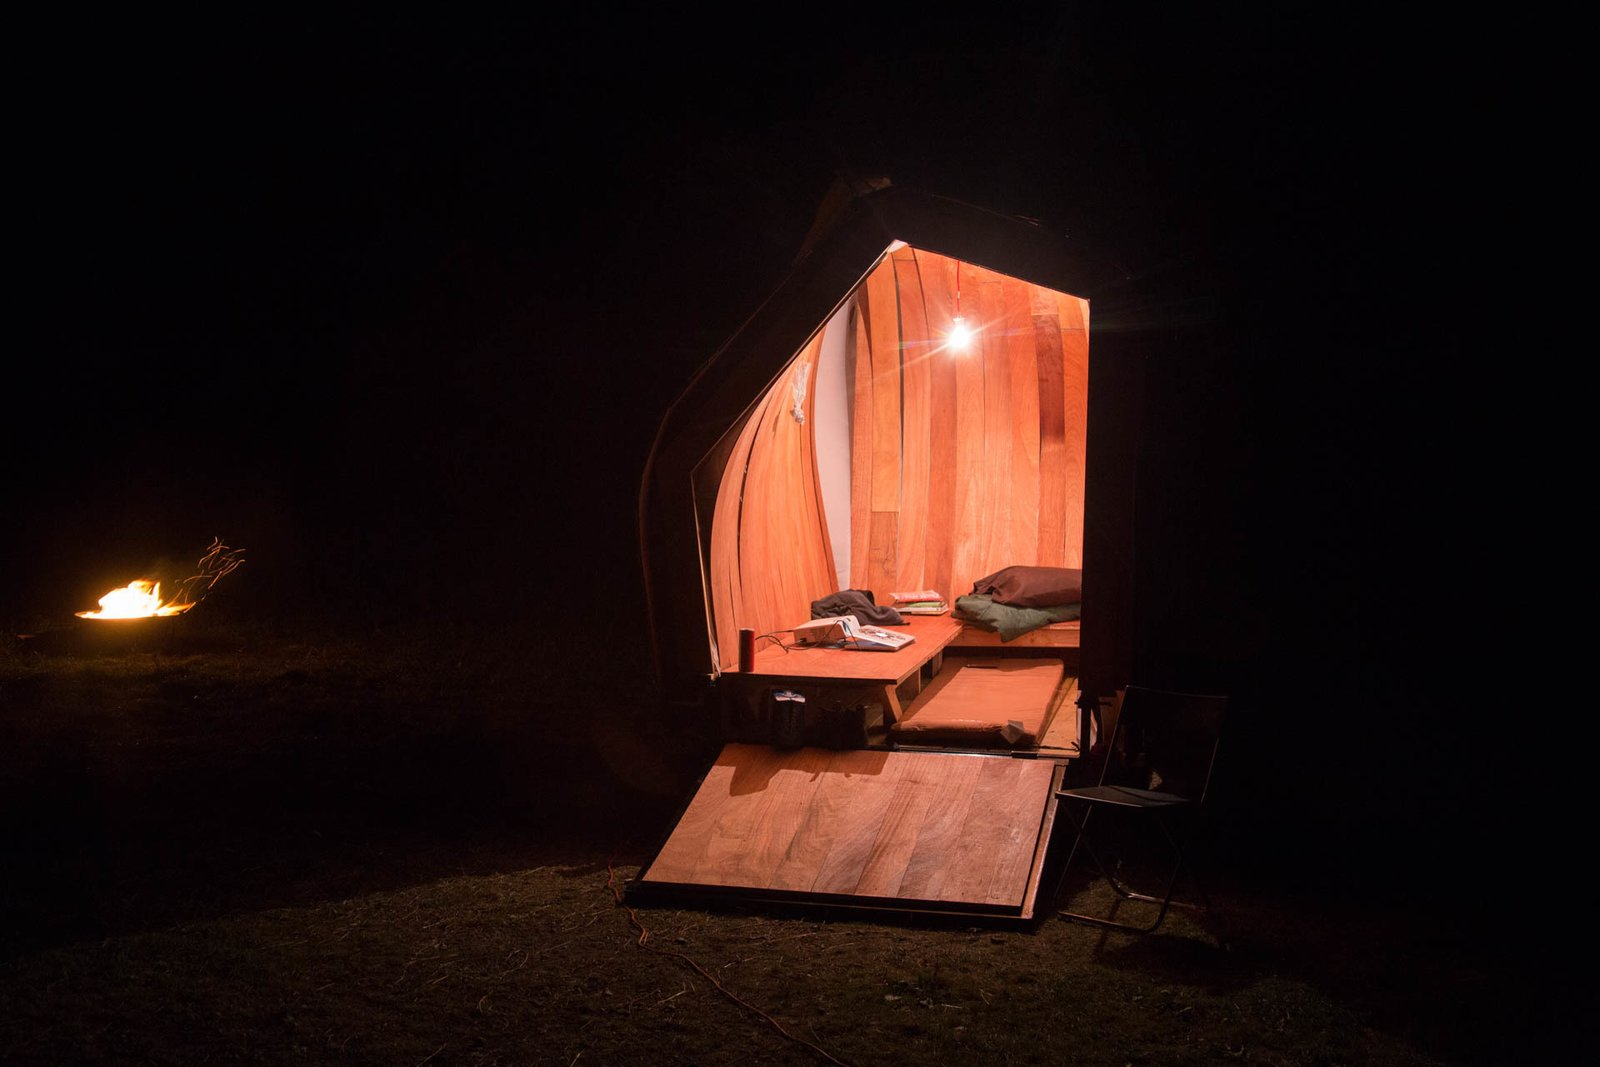 The team of 15 students and 5 professional volunteers then fabricated the home, seen here at night, using a mix of hand construction and power tools. Hand-made physical models were also part of the design process.  Photo 4 of 5 in Summer Design Program Crafts Its Own Mobile Dwelling